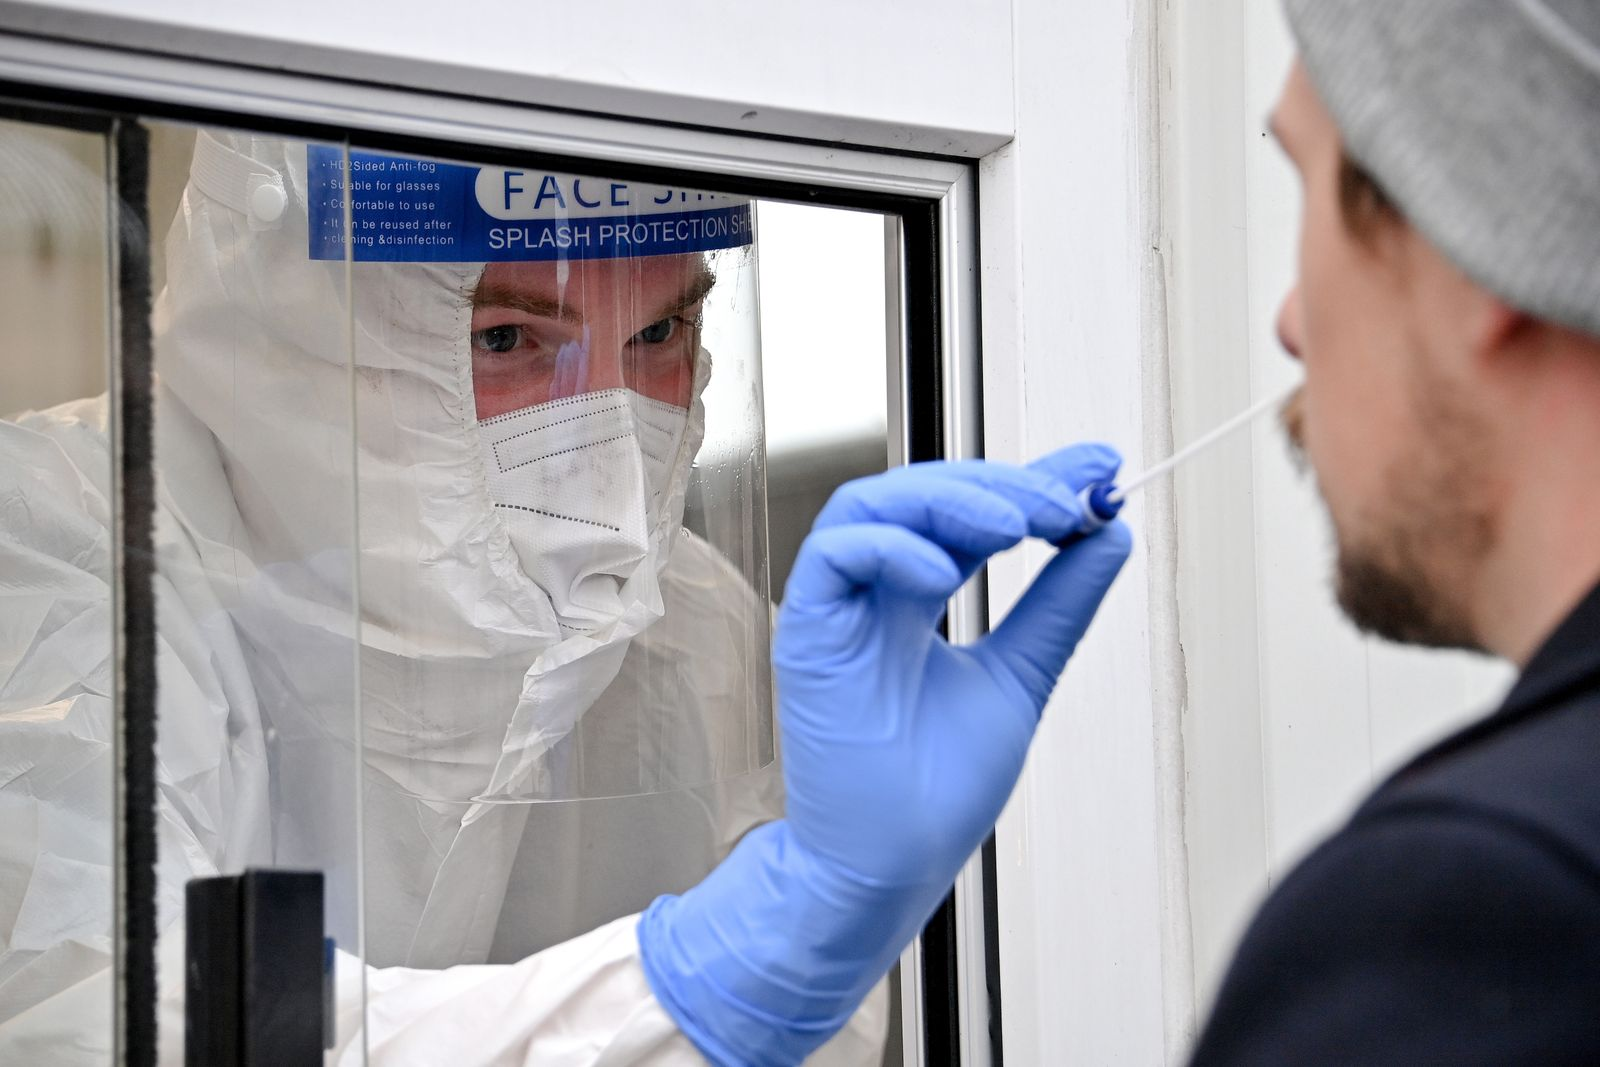 German authorities tighten measures to stem Coronavirus spread, Cologne, Germany - 15 Oct 2020